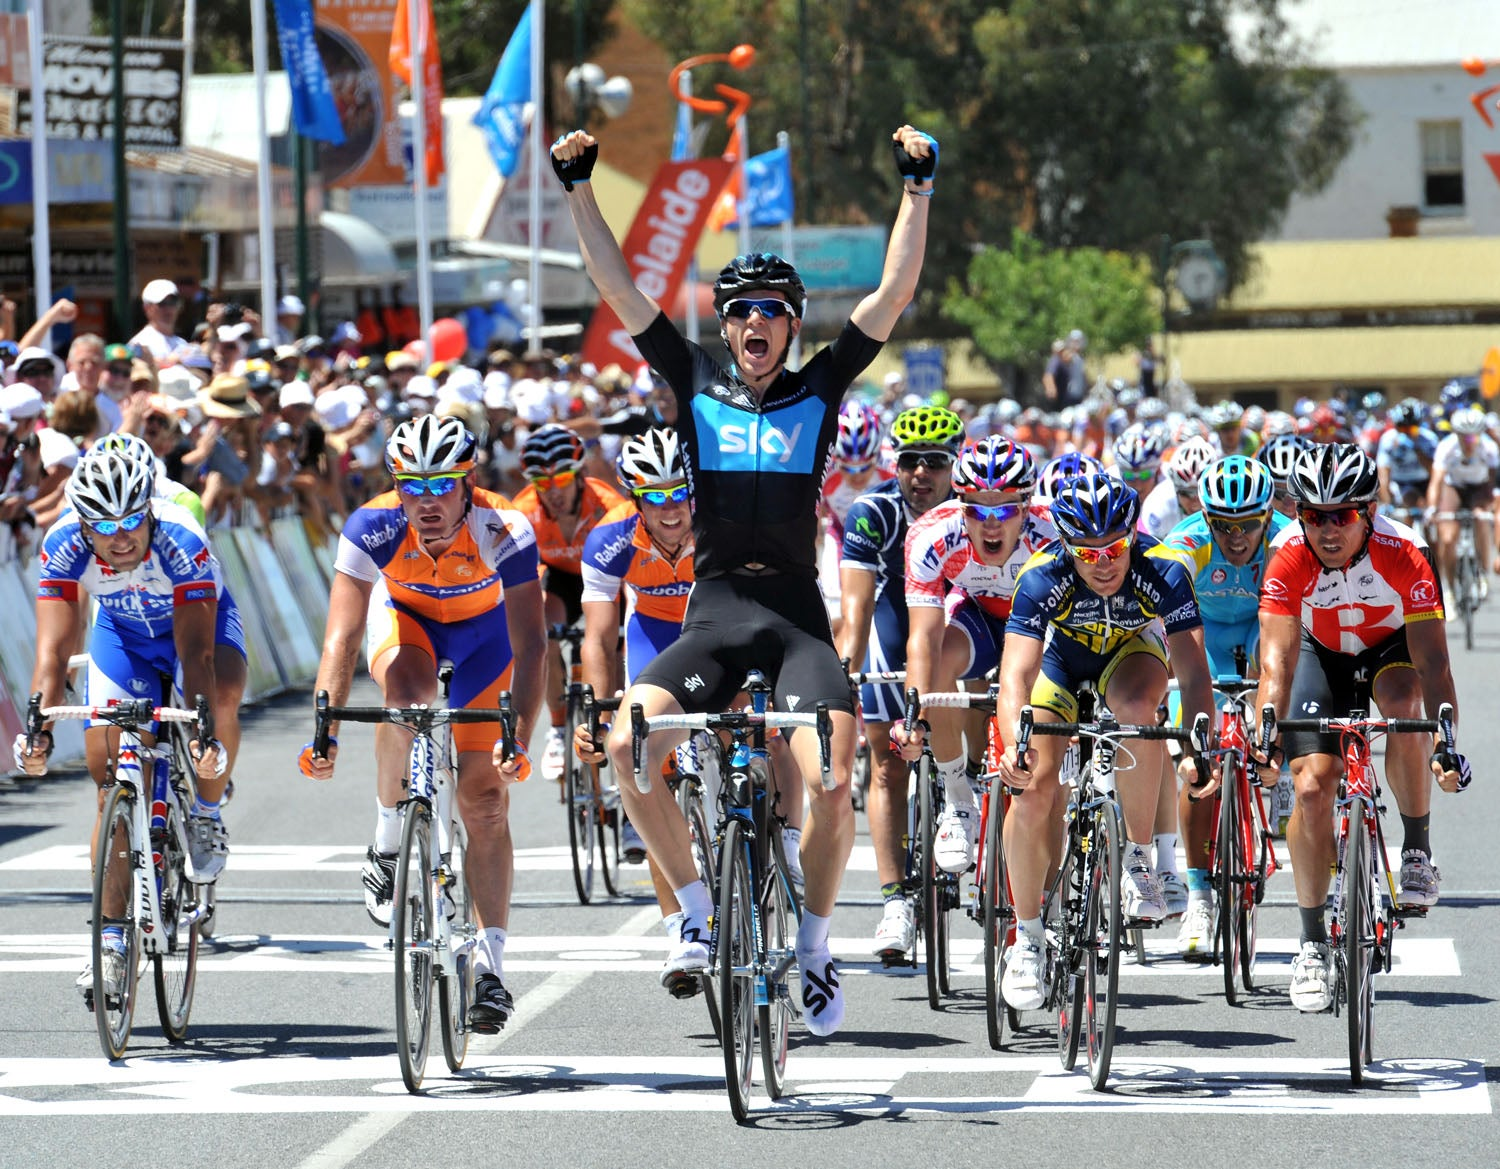 2011 Tour Down Under, Stage 2: Swift takes the win.